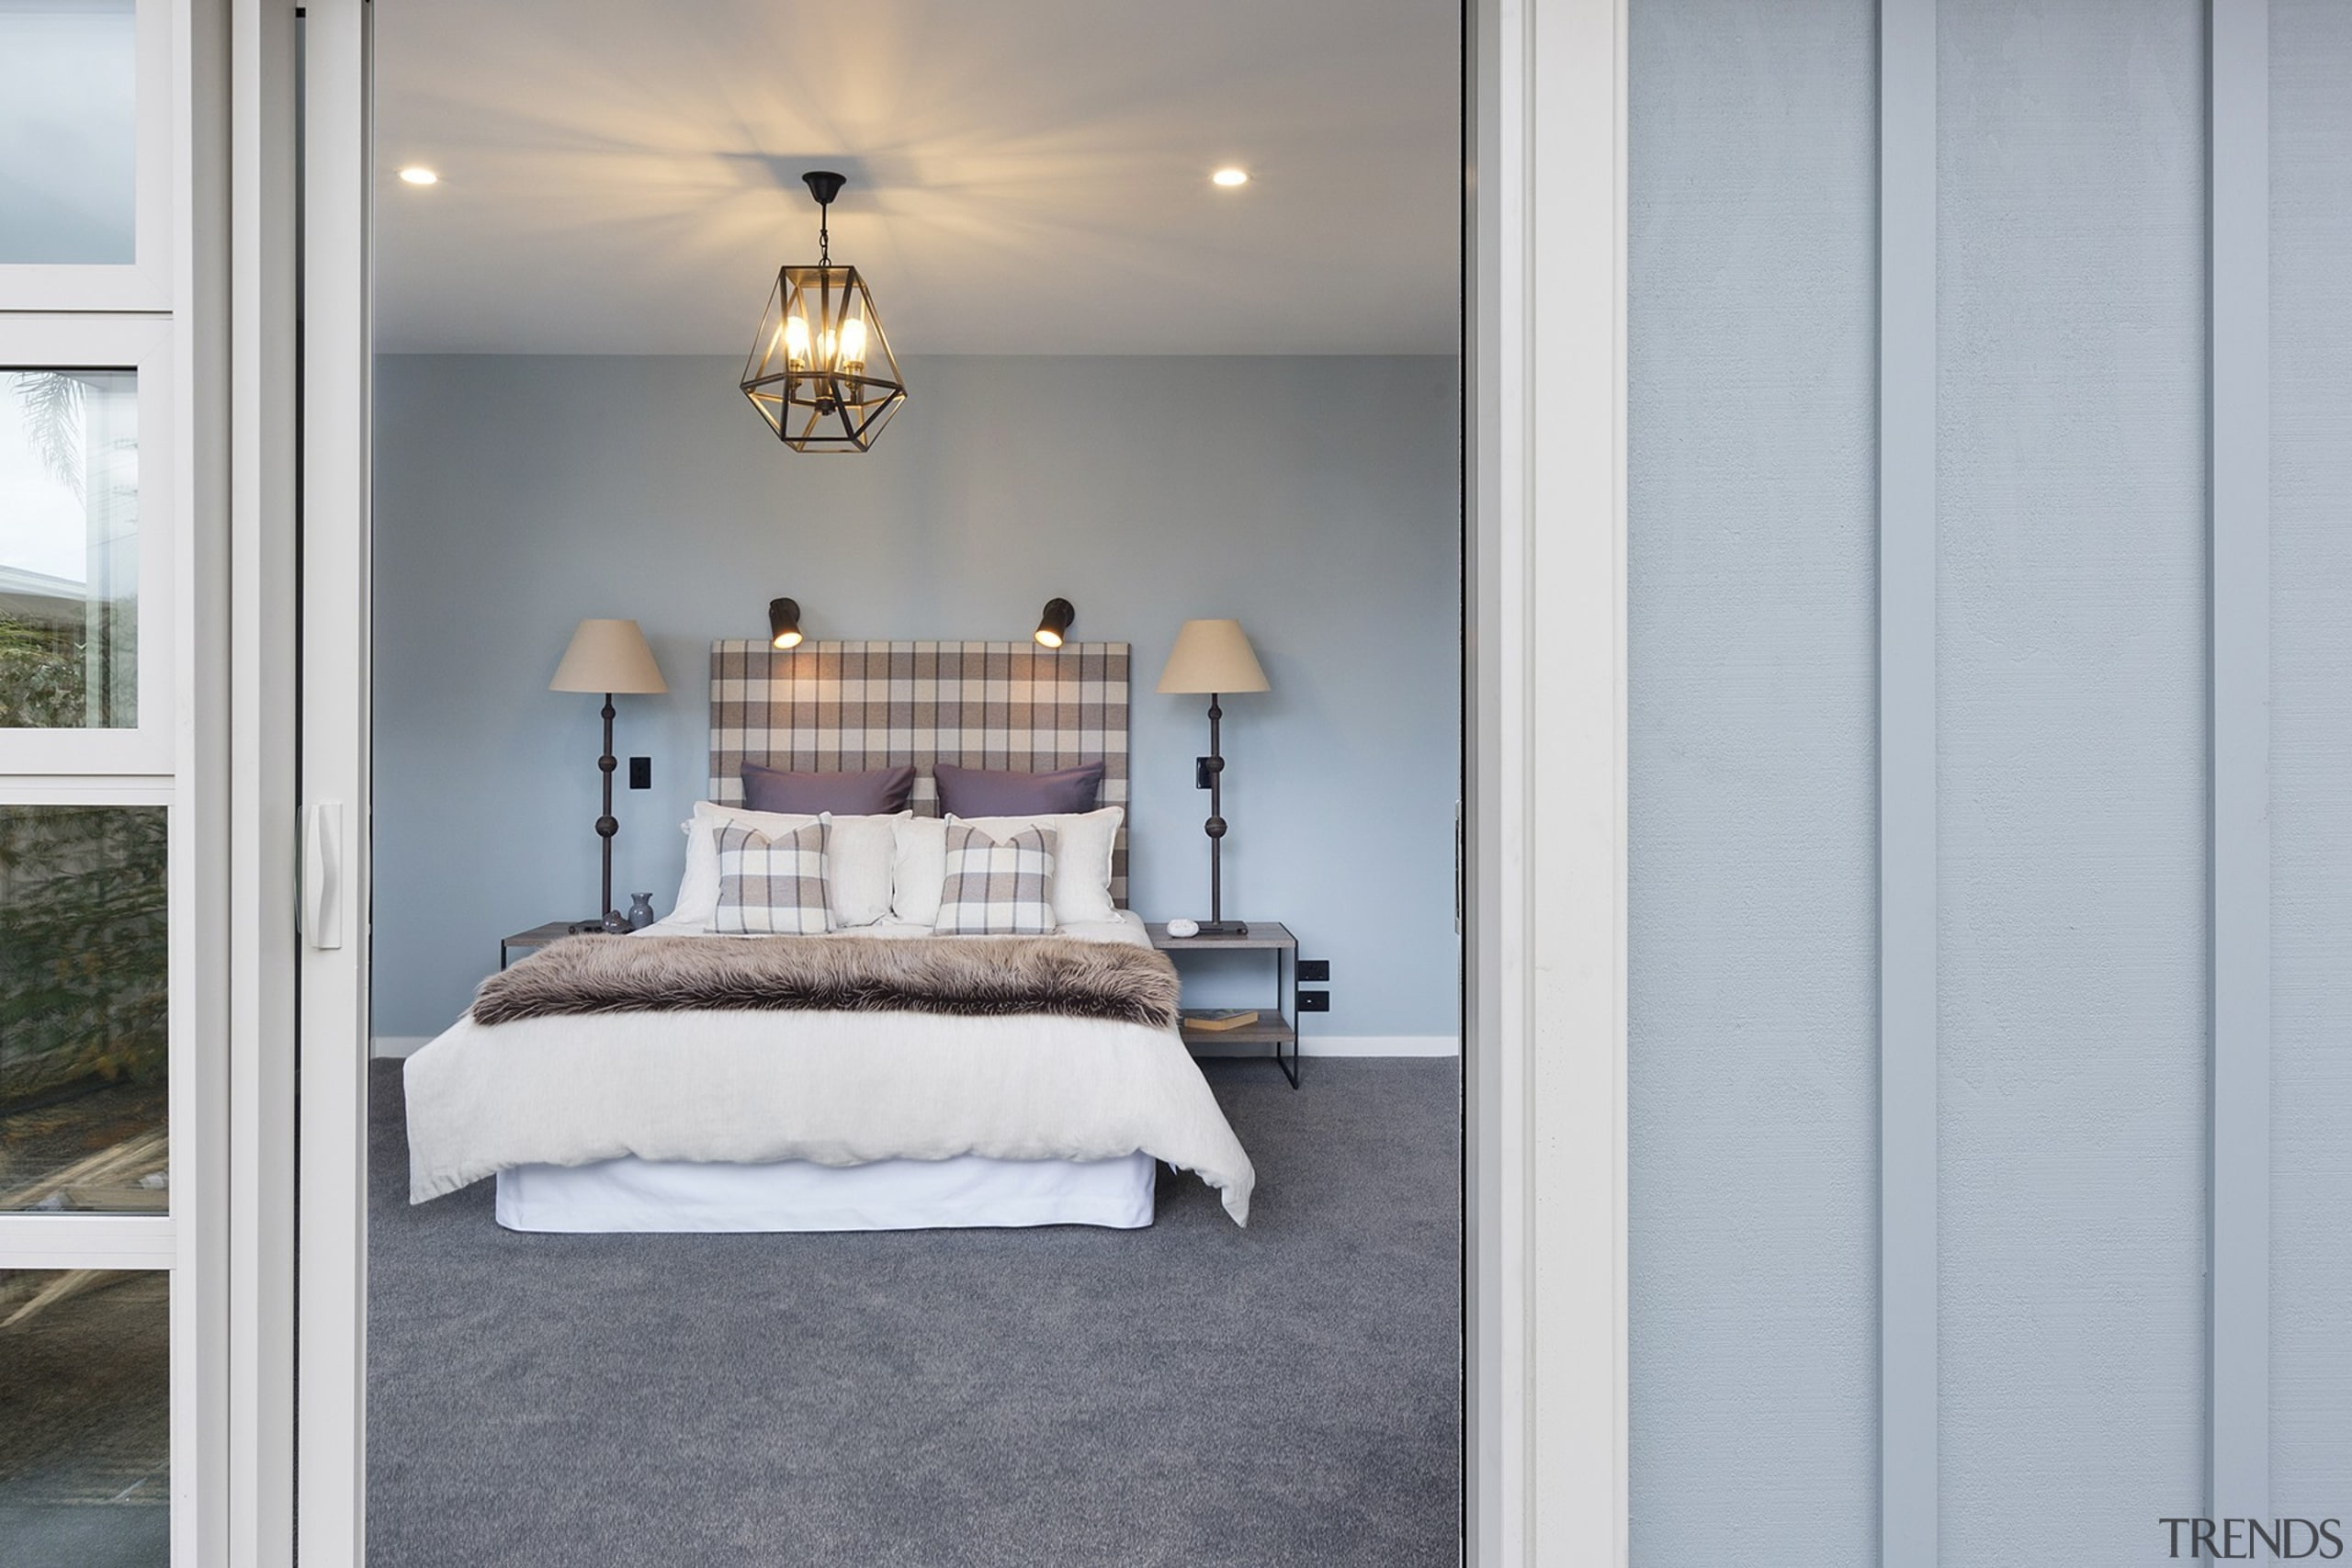 The Maxwell Design Master Bedroom - The Maxwell bed frame, bedroom, floor, furniture, home, interior design, real estate, room, wall, window, gray